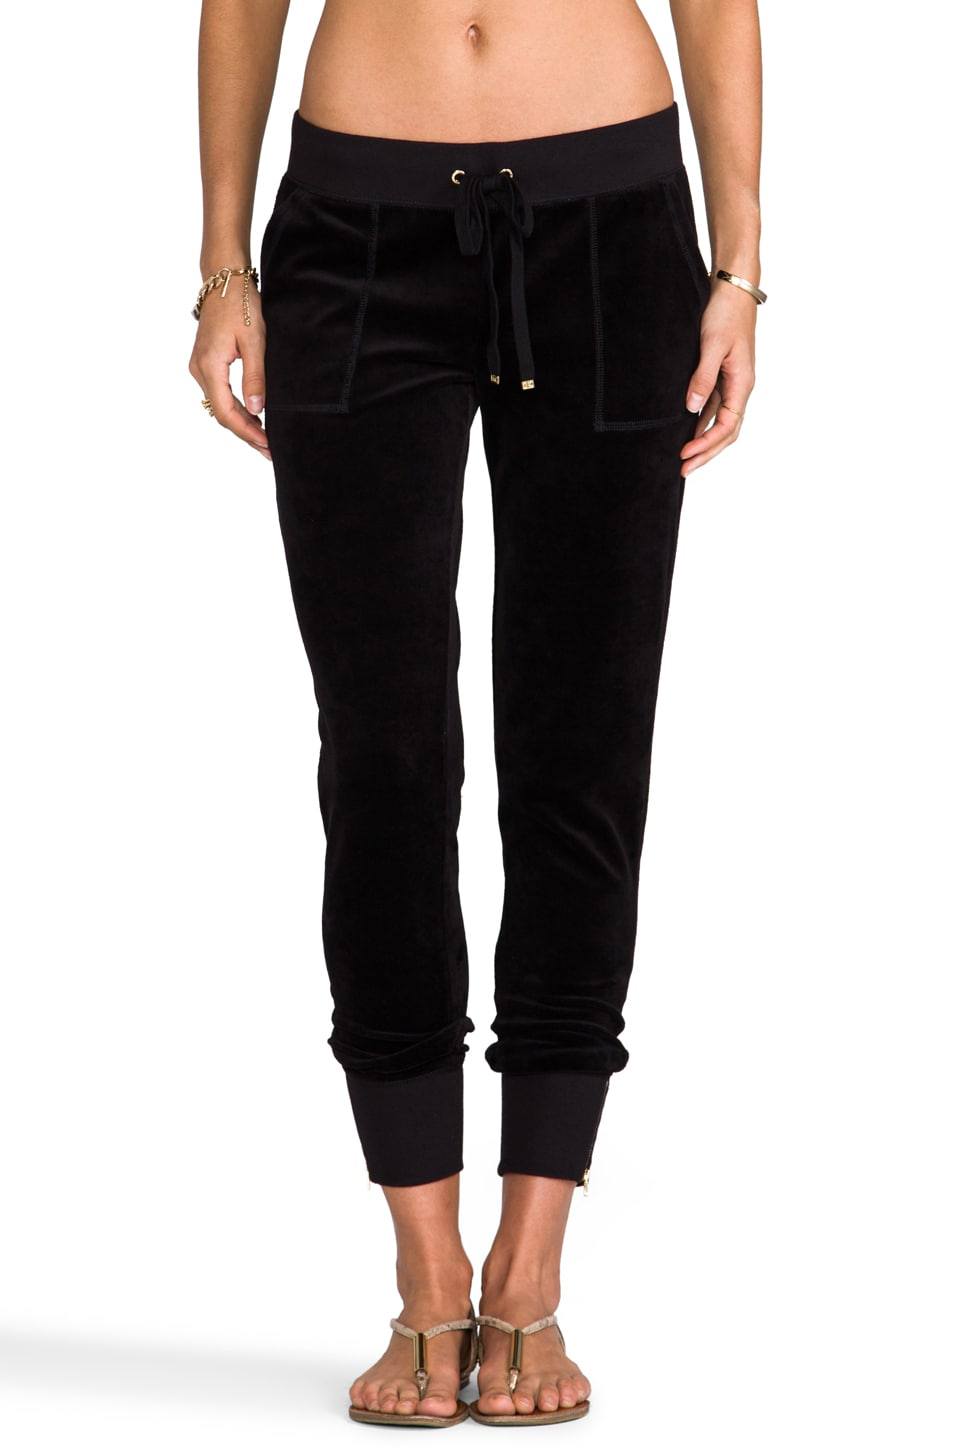 Juicy Couture Ankle Zip Pant in Black